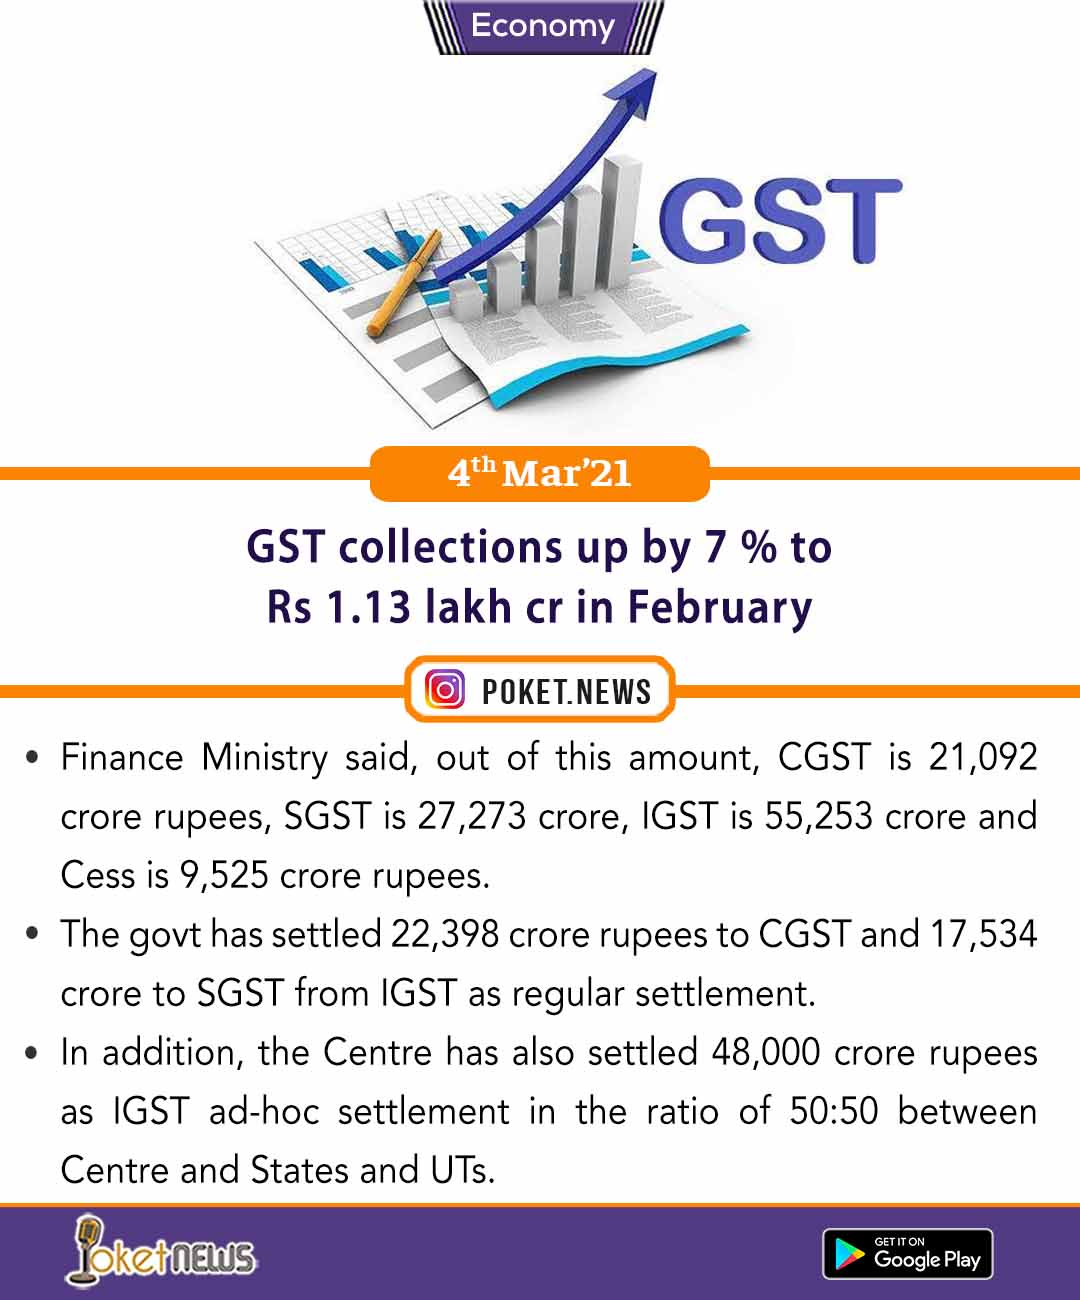 GST collections up by 7 % to Rs 1.13 lakh cr in February